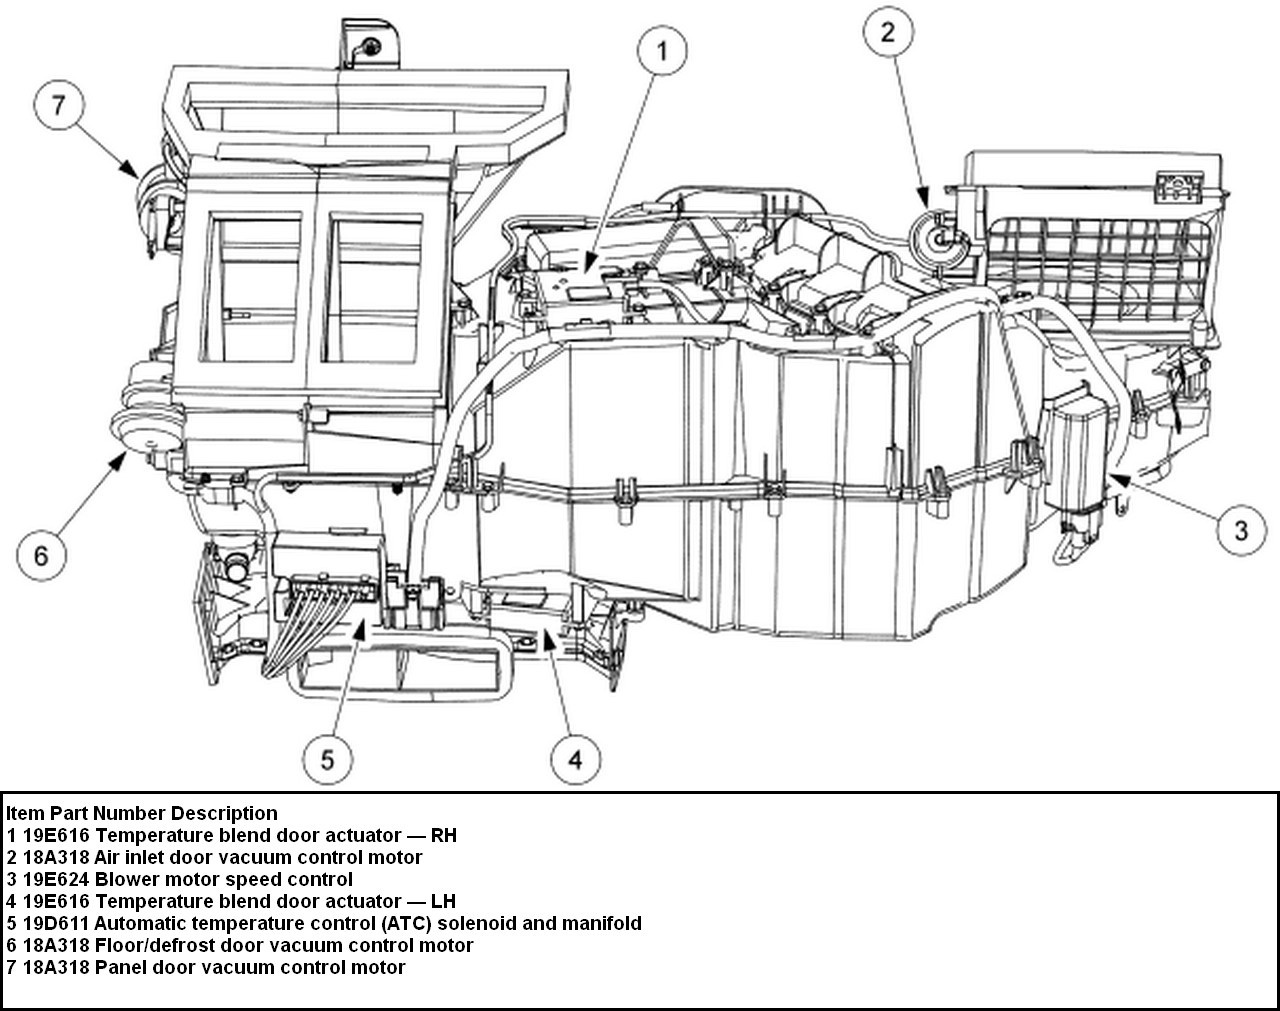 2006 Lincoln Ls Fuse Diagram | New Wiring Resources 2019 on